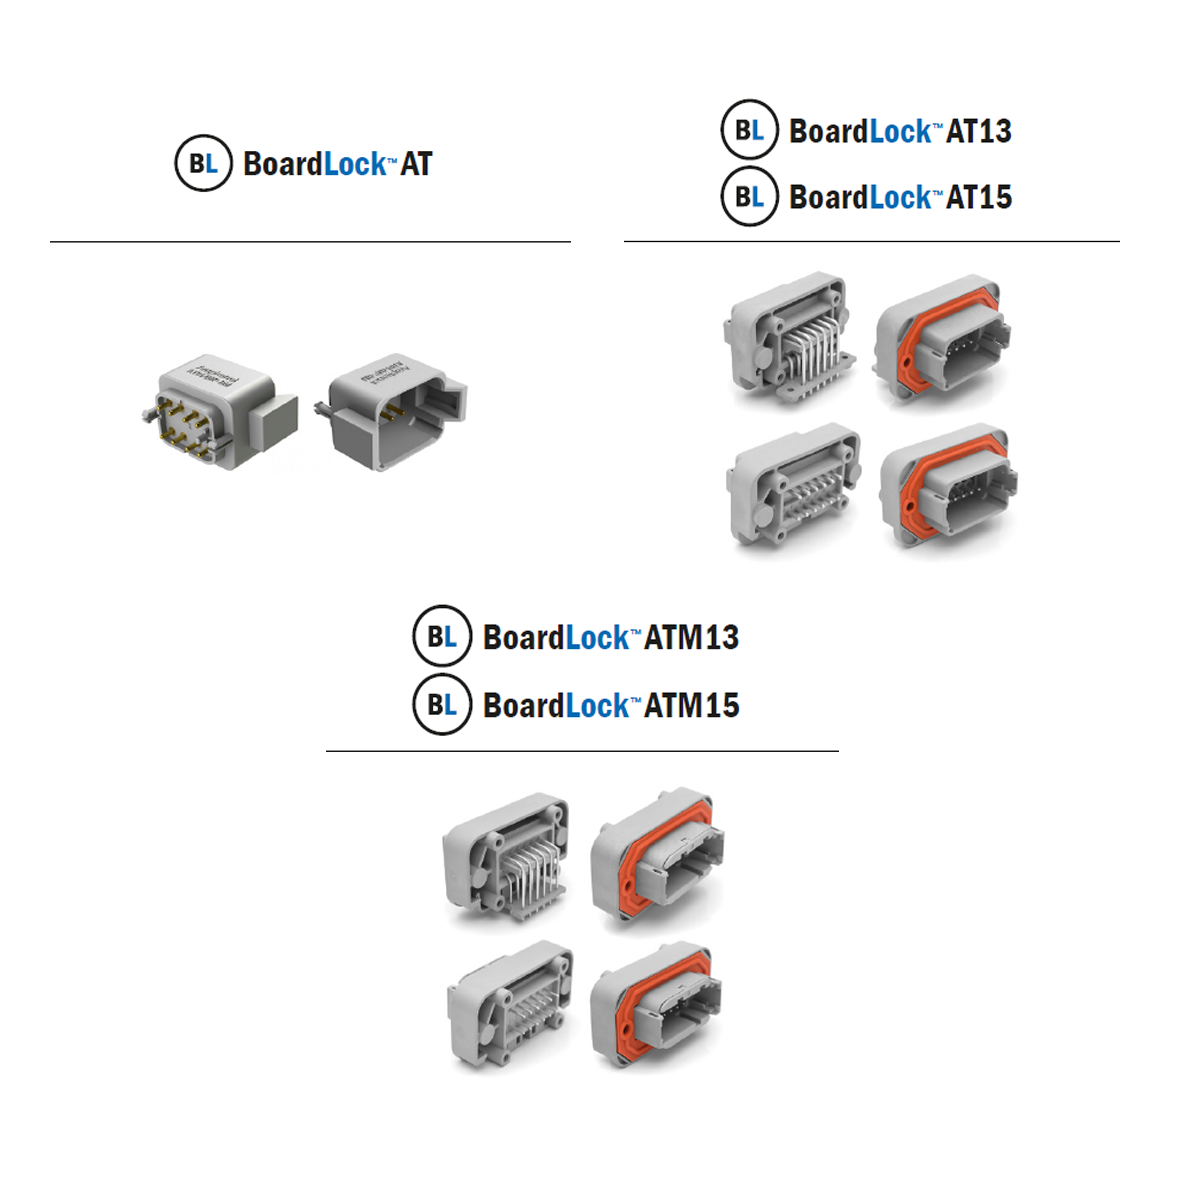 BoardLock™ Family Overview